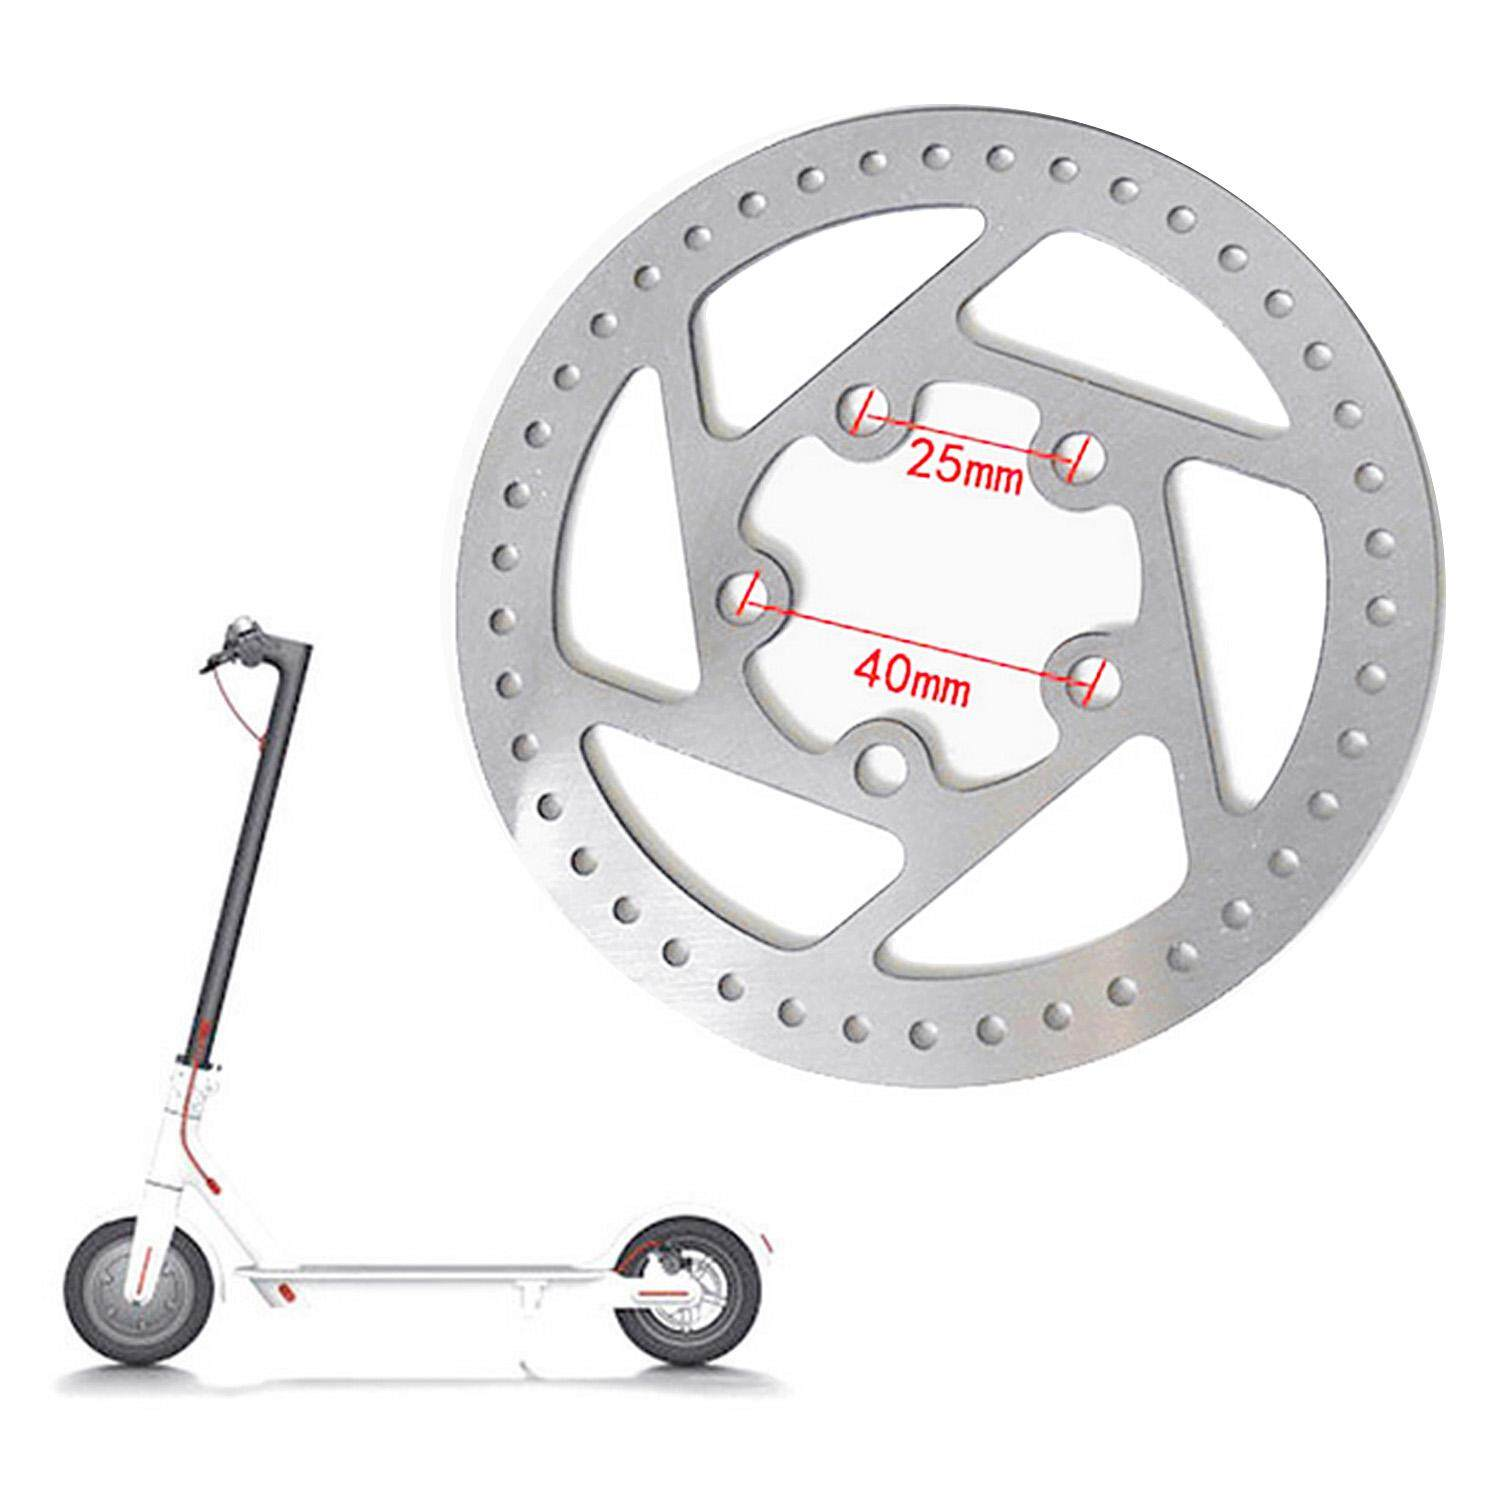 Practical Scooter Brake Disc Replacement Parts Accessories Compatible with  Xiaomi Xiao Mi Mijia M365 Scooter